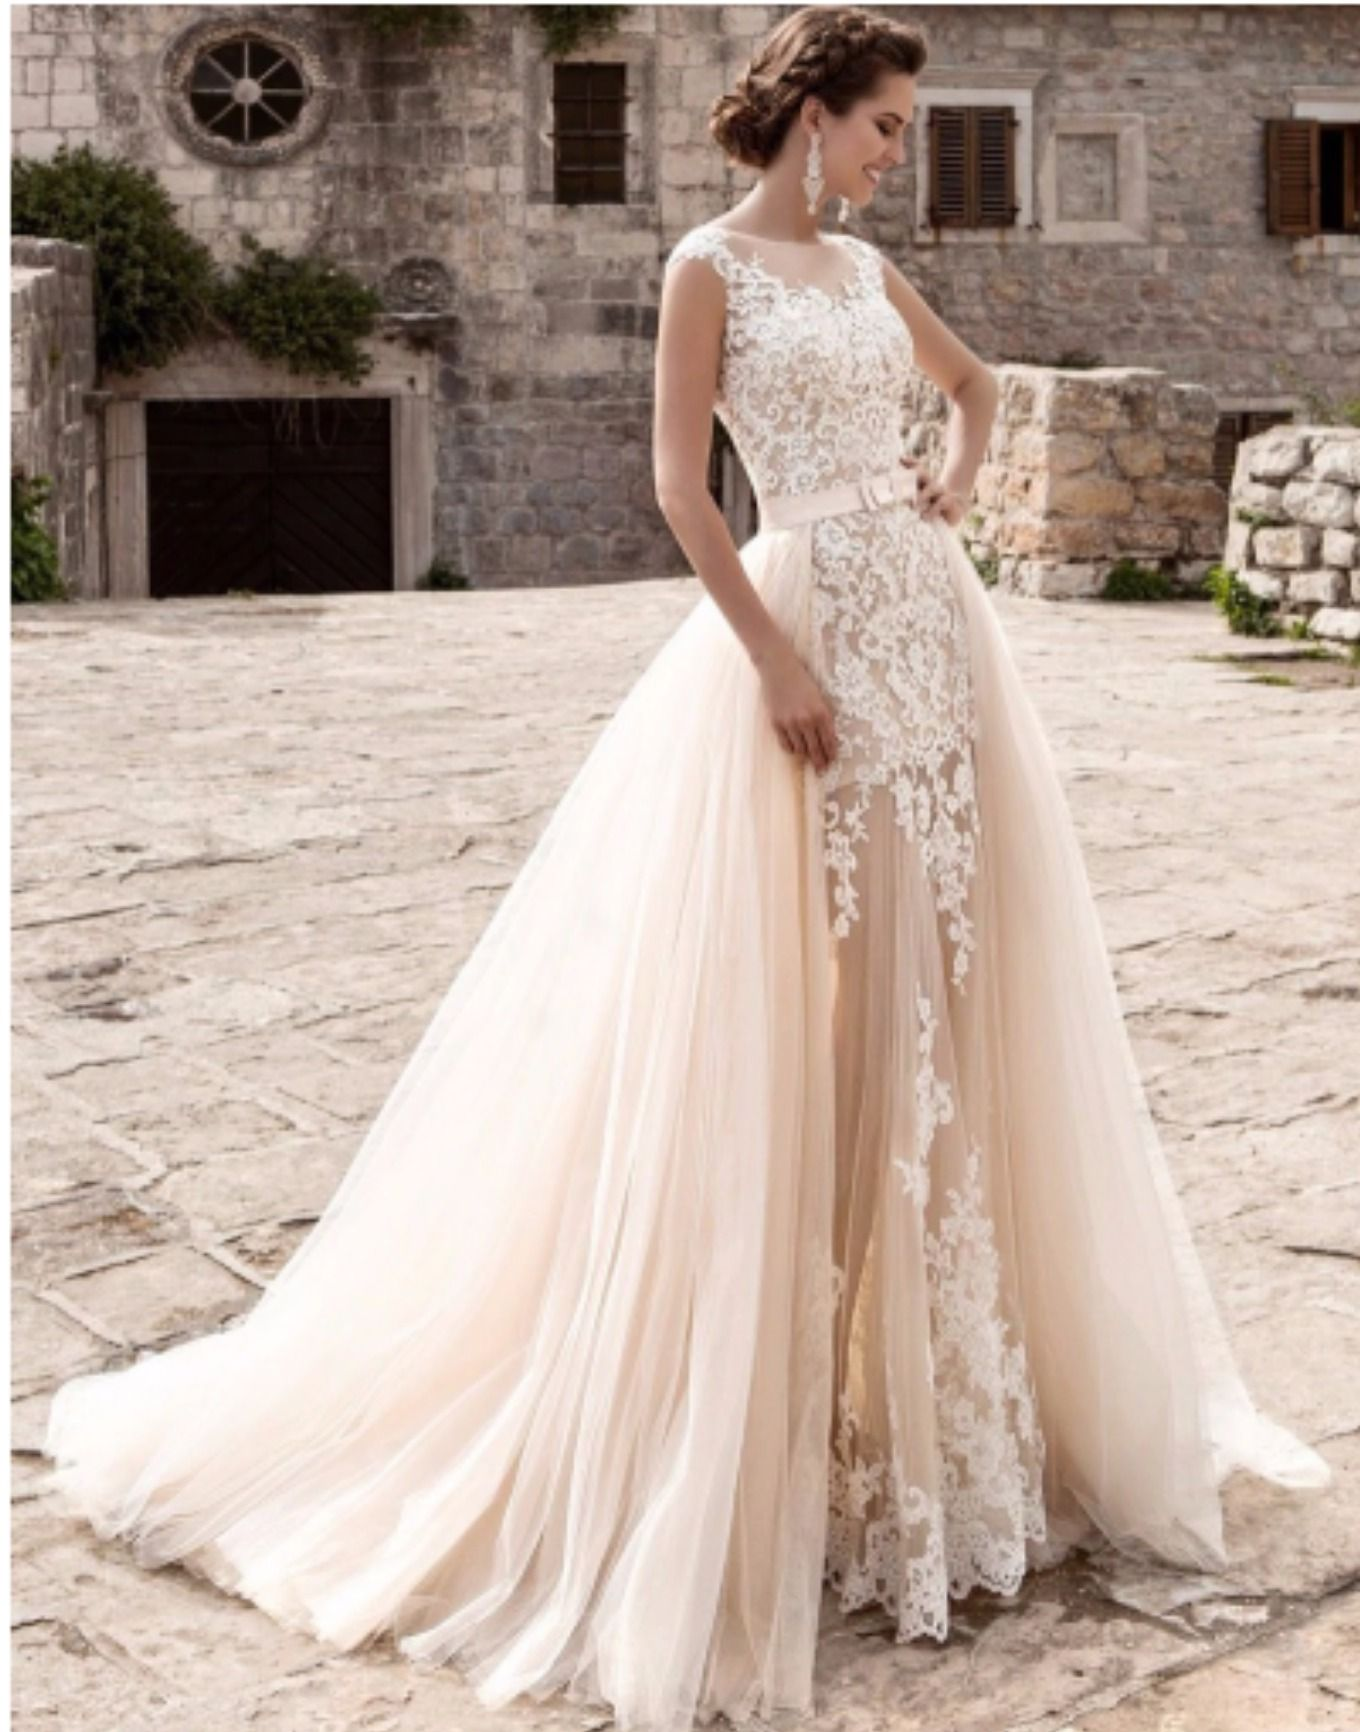 Charming mermaid bridal gown with detachable skirt in 2020